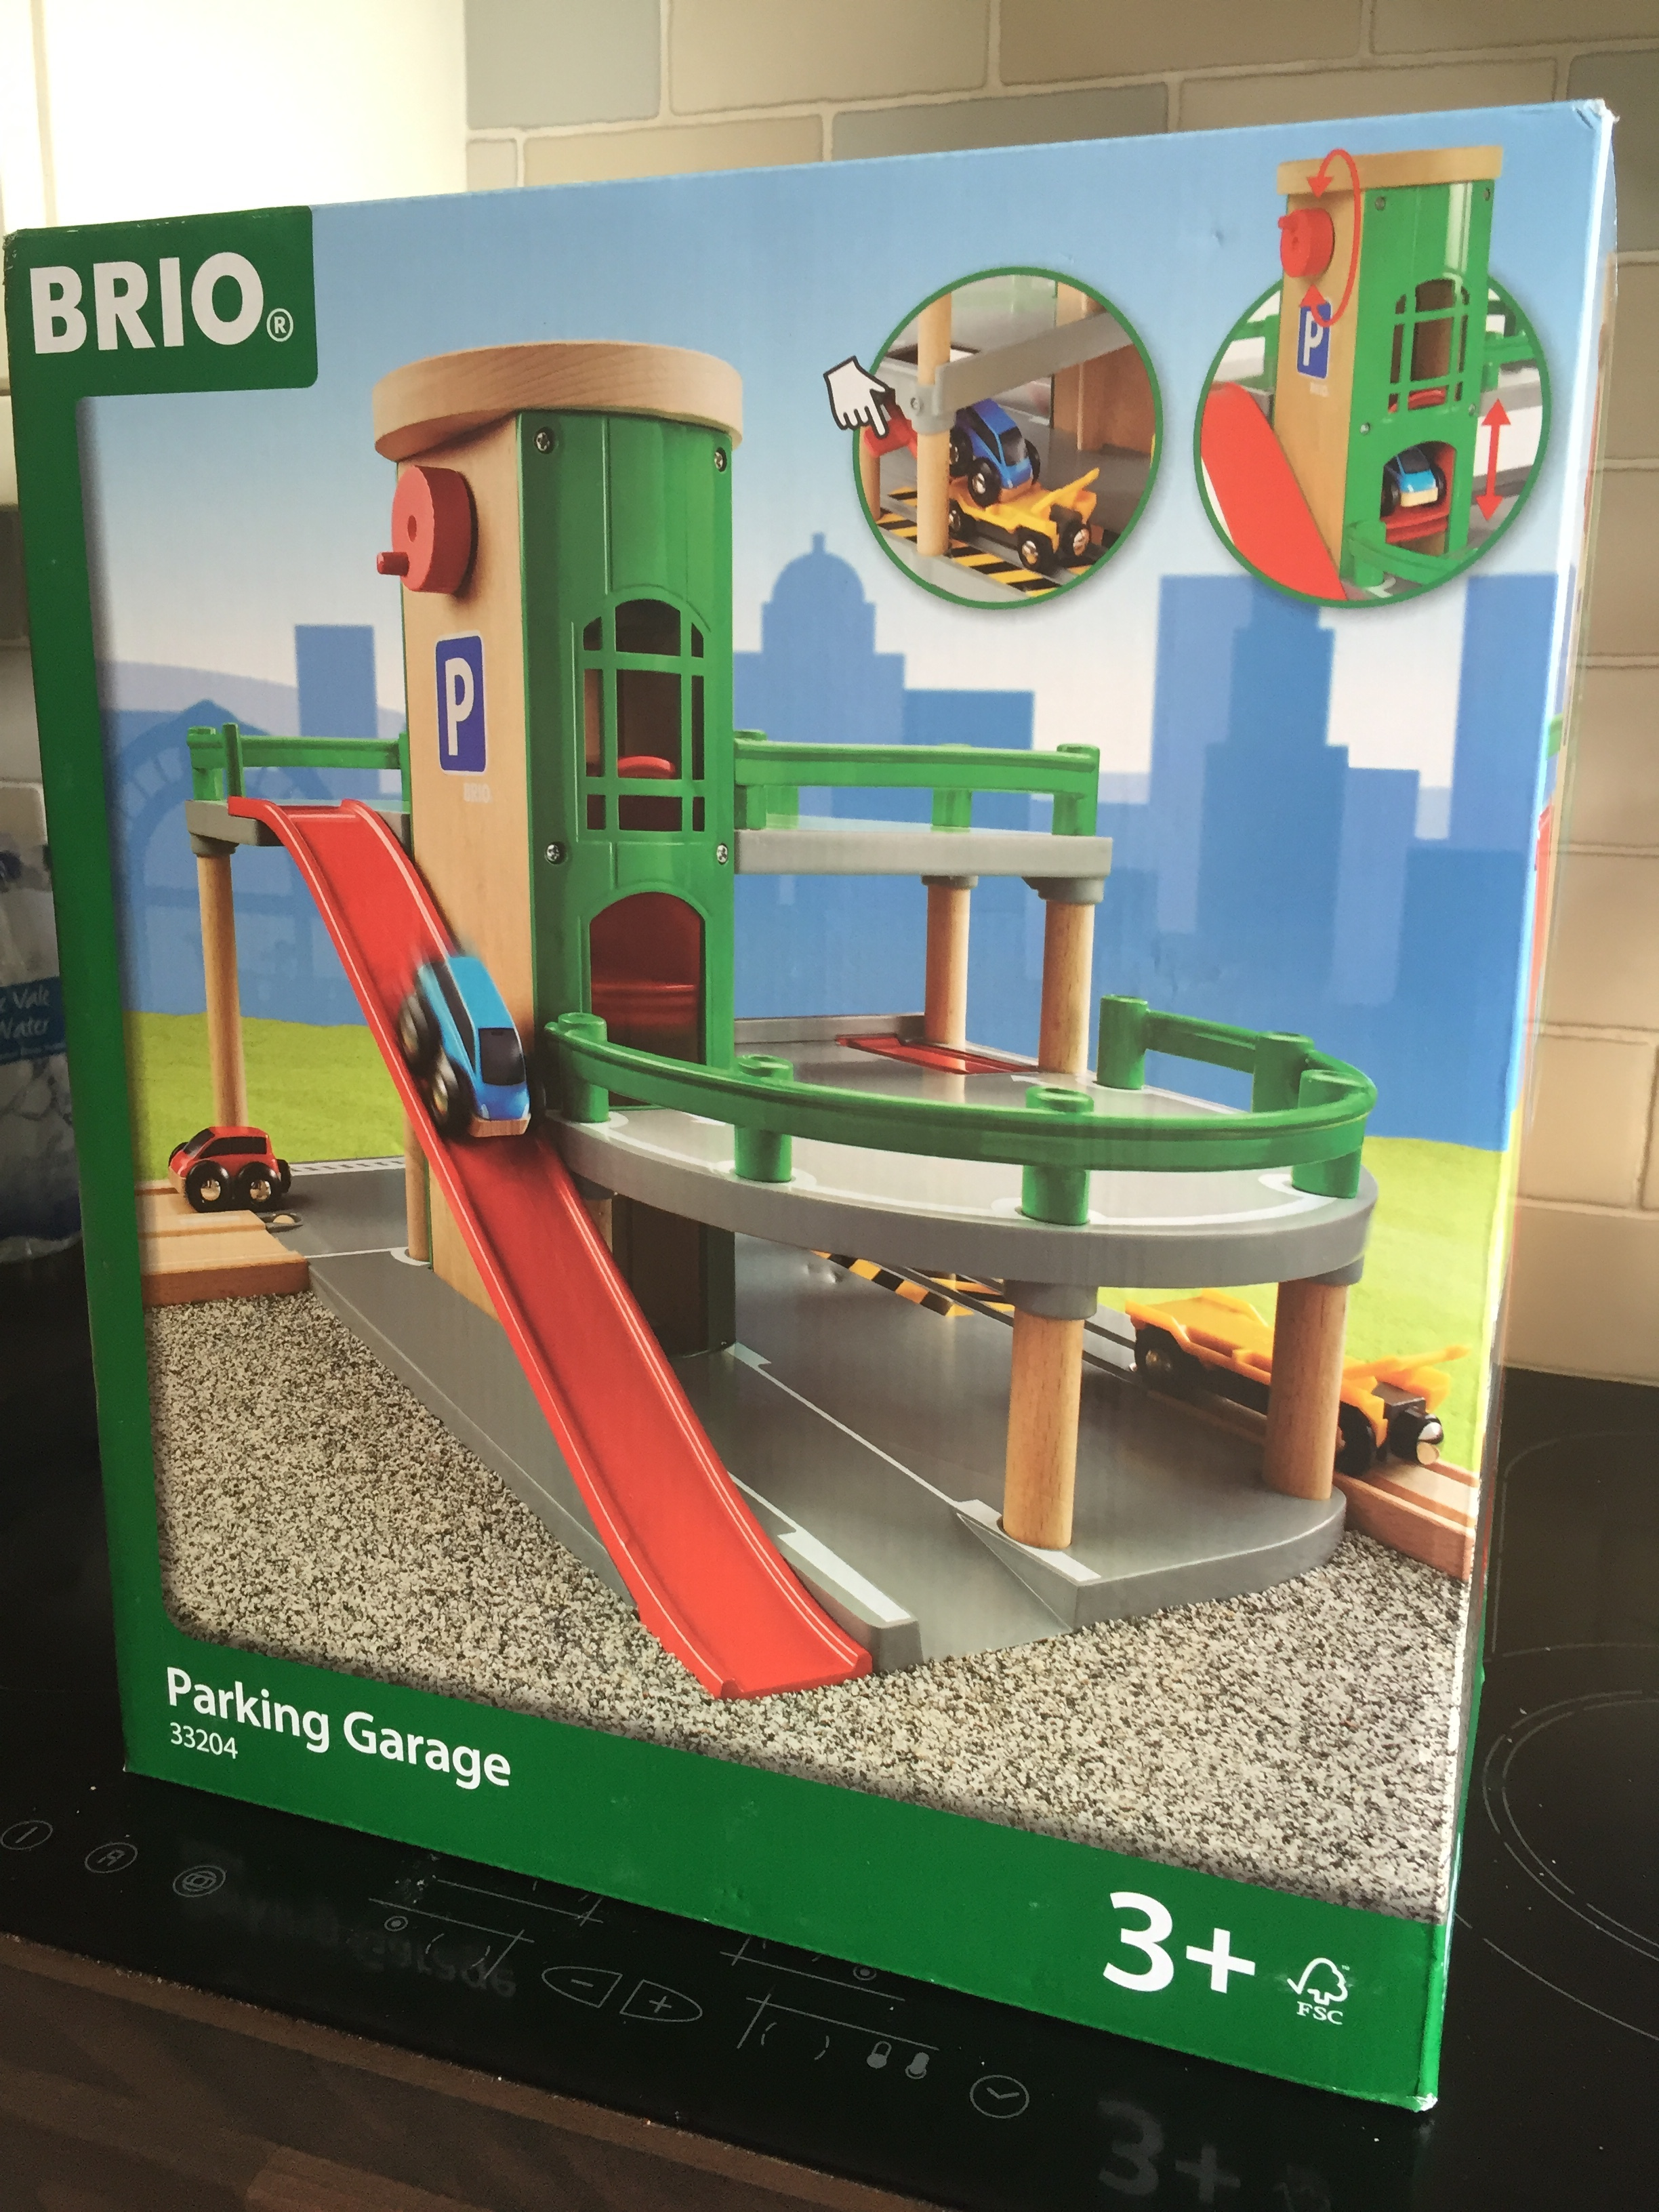 The Parking Garage Set from Brio is the perfect addition to your BRIO collection. If you have a wooden train set this set will compliment it perfectly. If you don't have a wooden train set this would be a great starter to building your own BRIO wooden toy city.